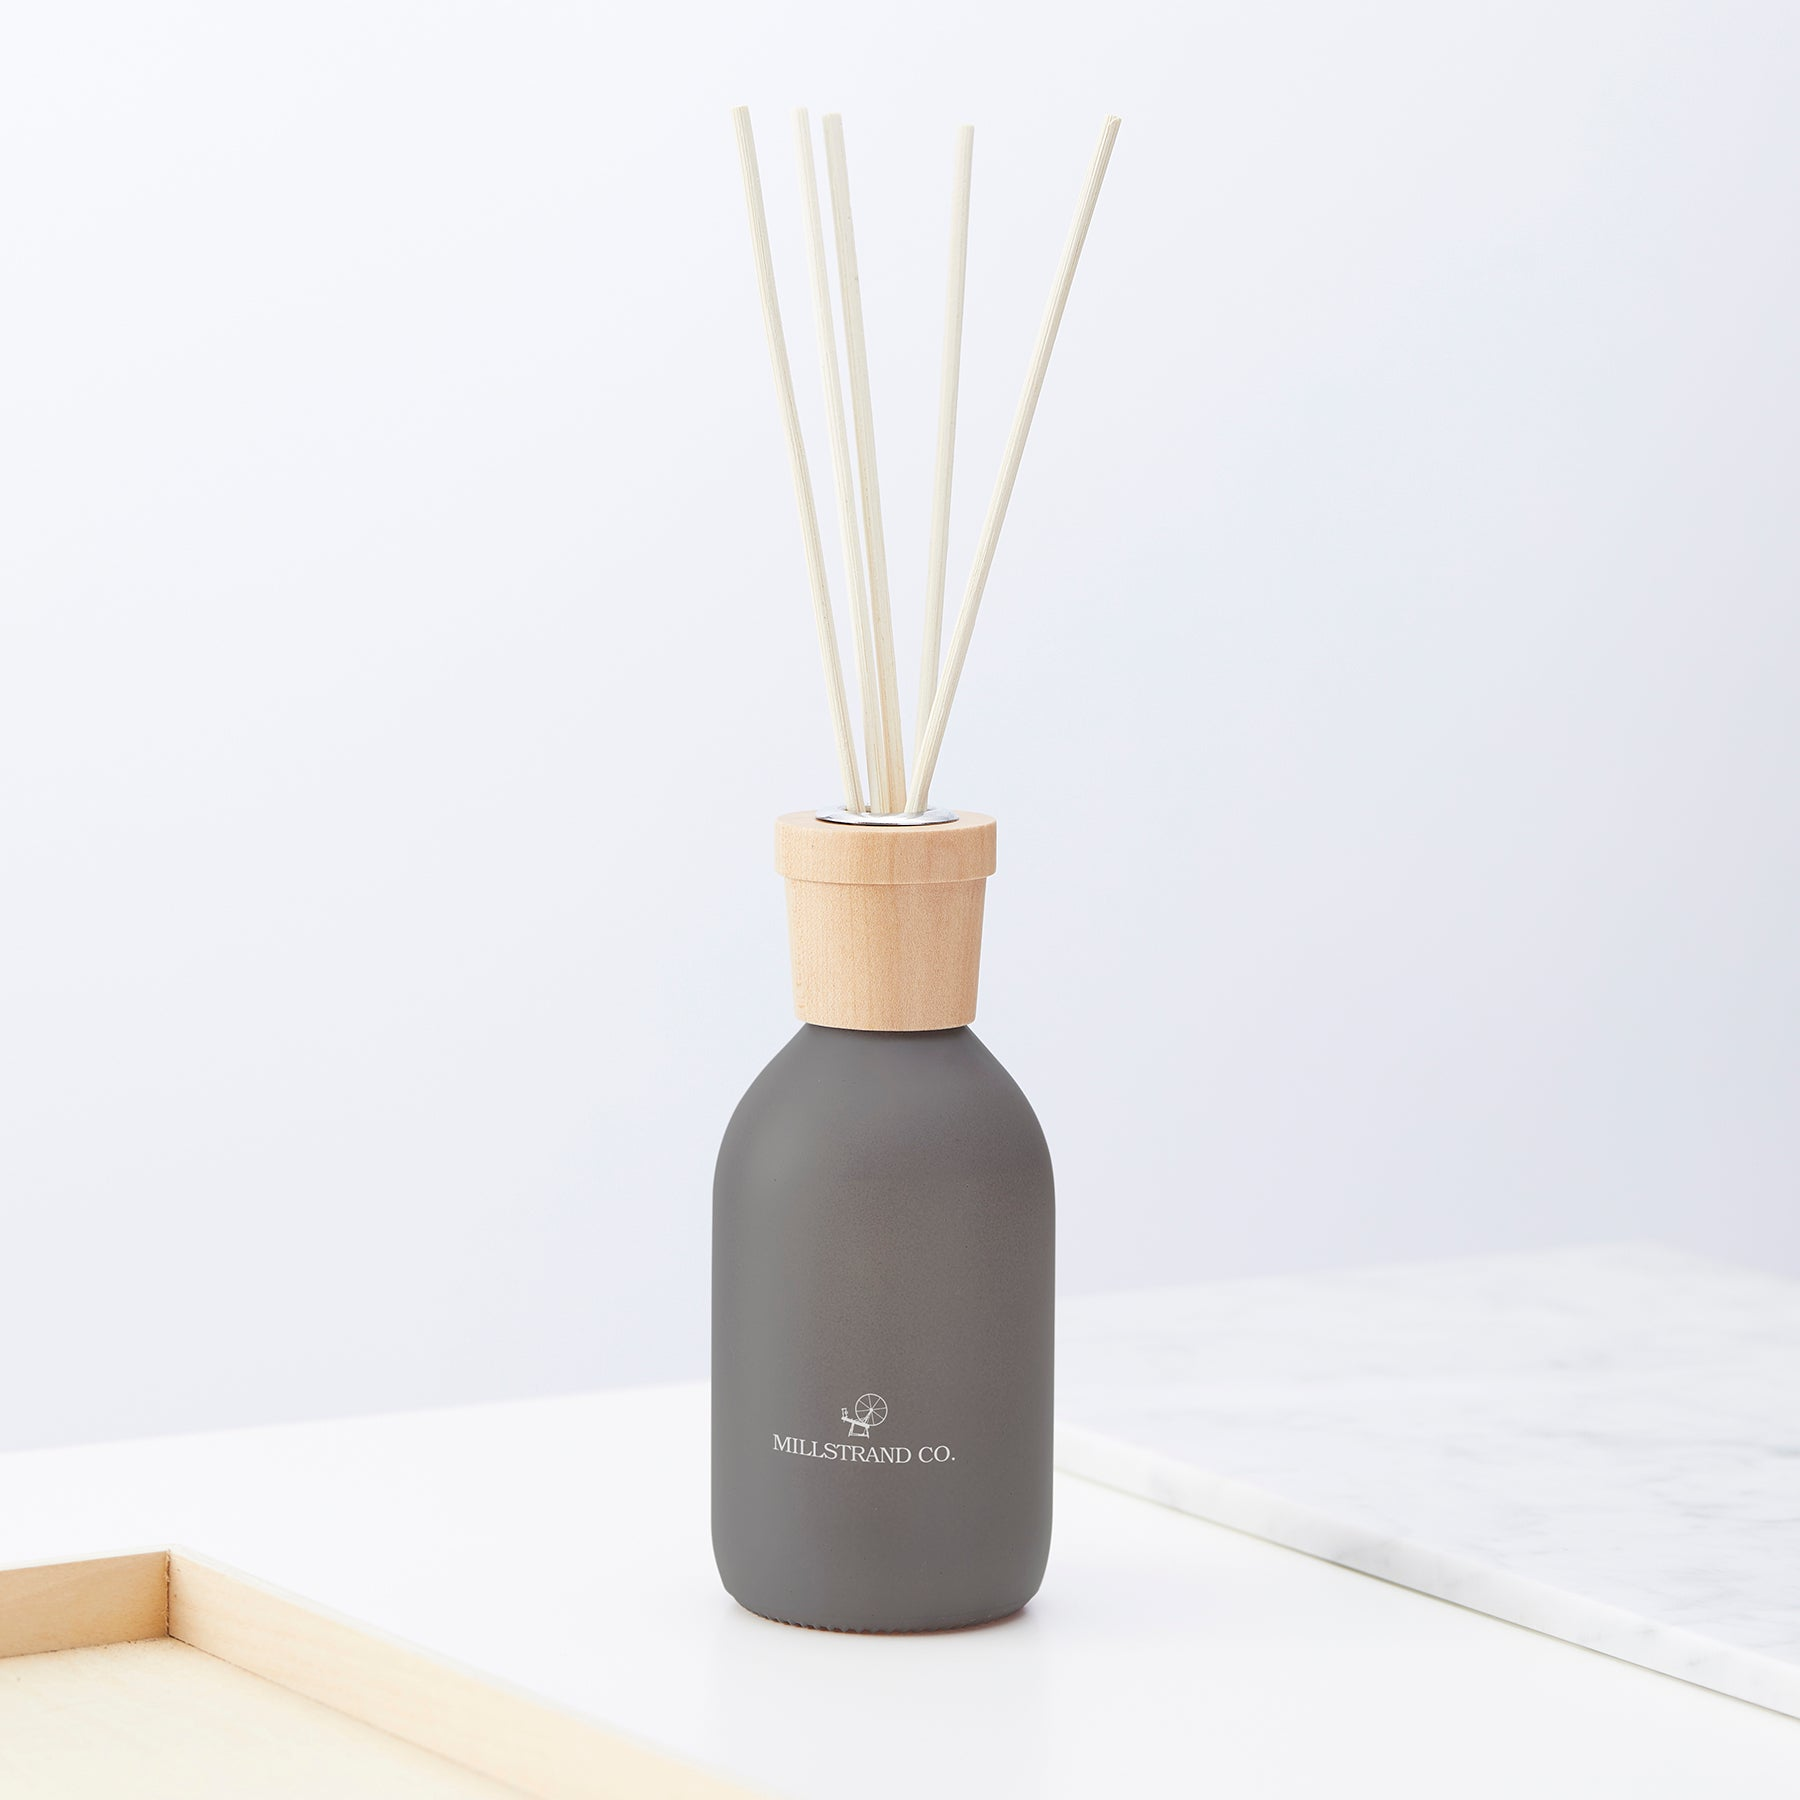 Millstrand Co. Serenity Collection – Reed Diffuser in Daffodils & Daisies 8.82oz